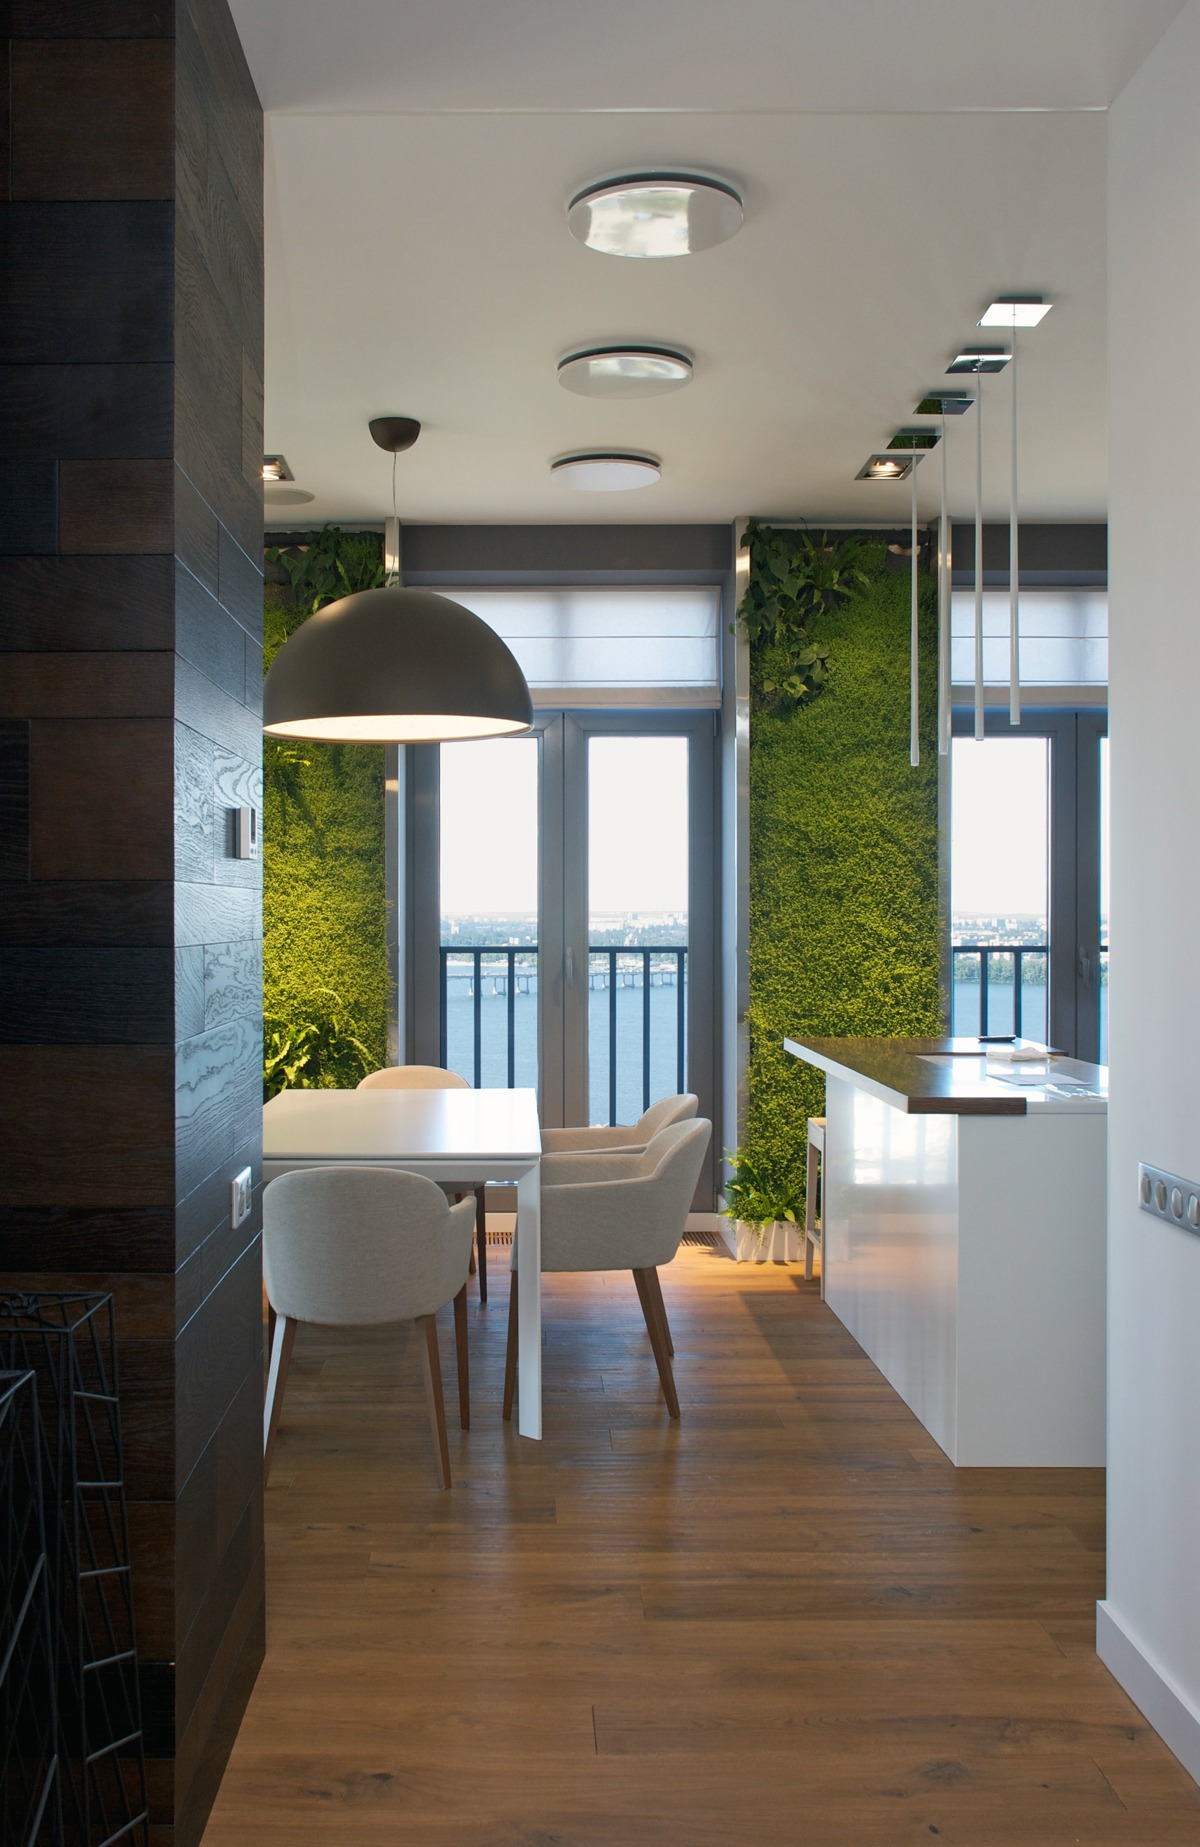 Vertical garden walls add life to apartment interior Modern apartment interior design